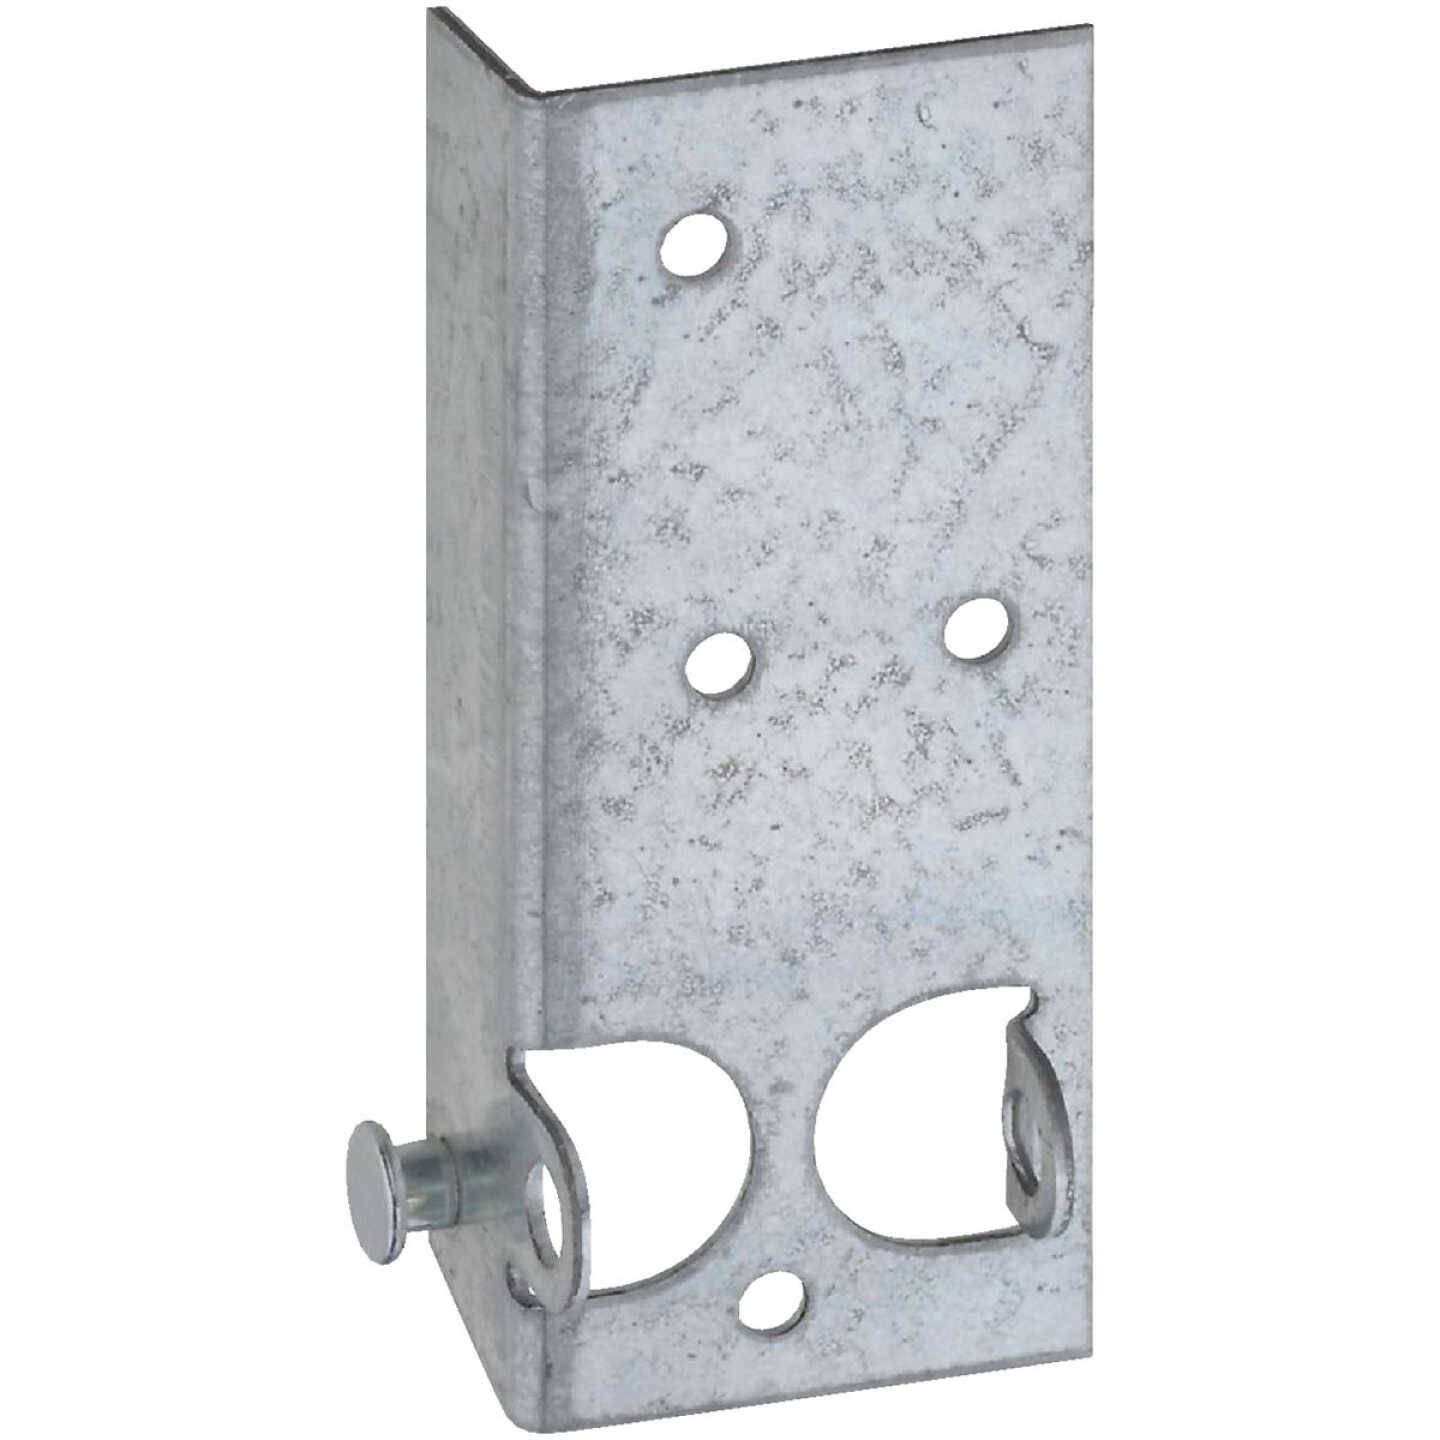 Prime-Line 7/16 In. Dia. Bottom Lifting Brackets -1 Left & 1 Right Image 1